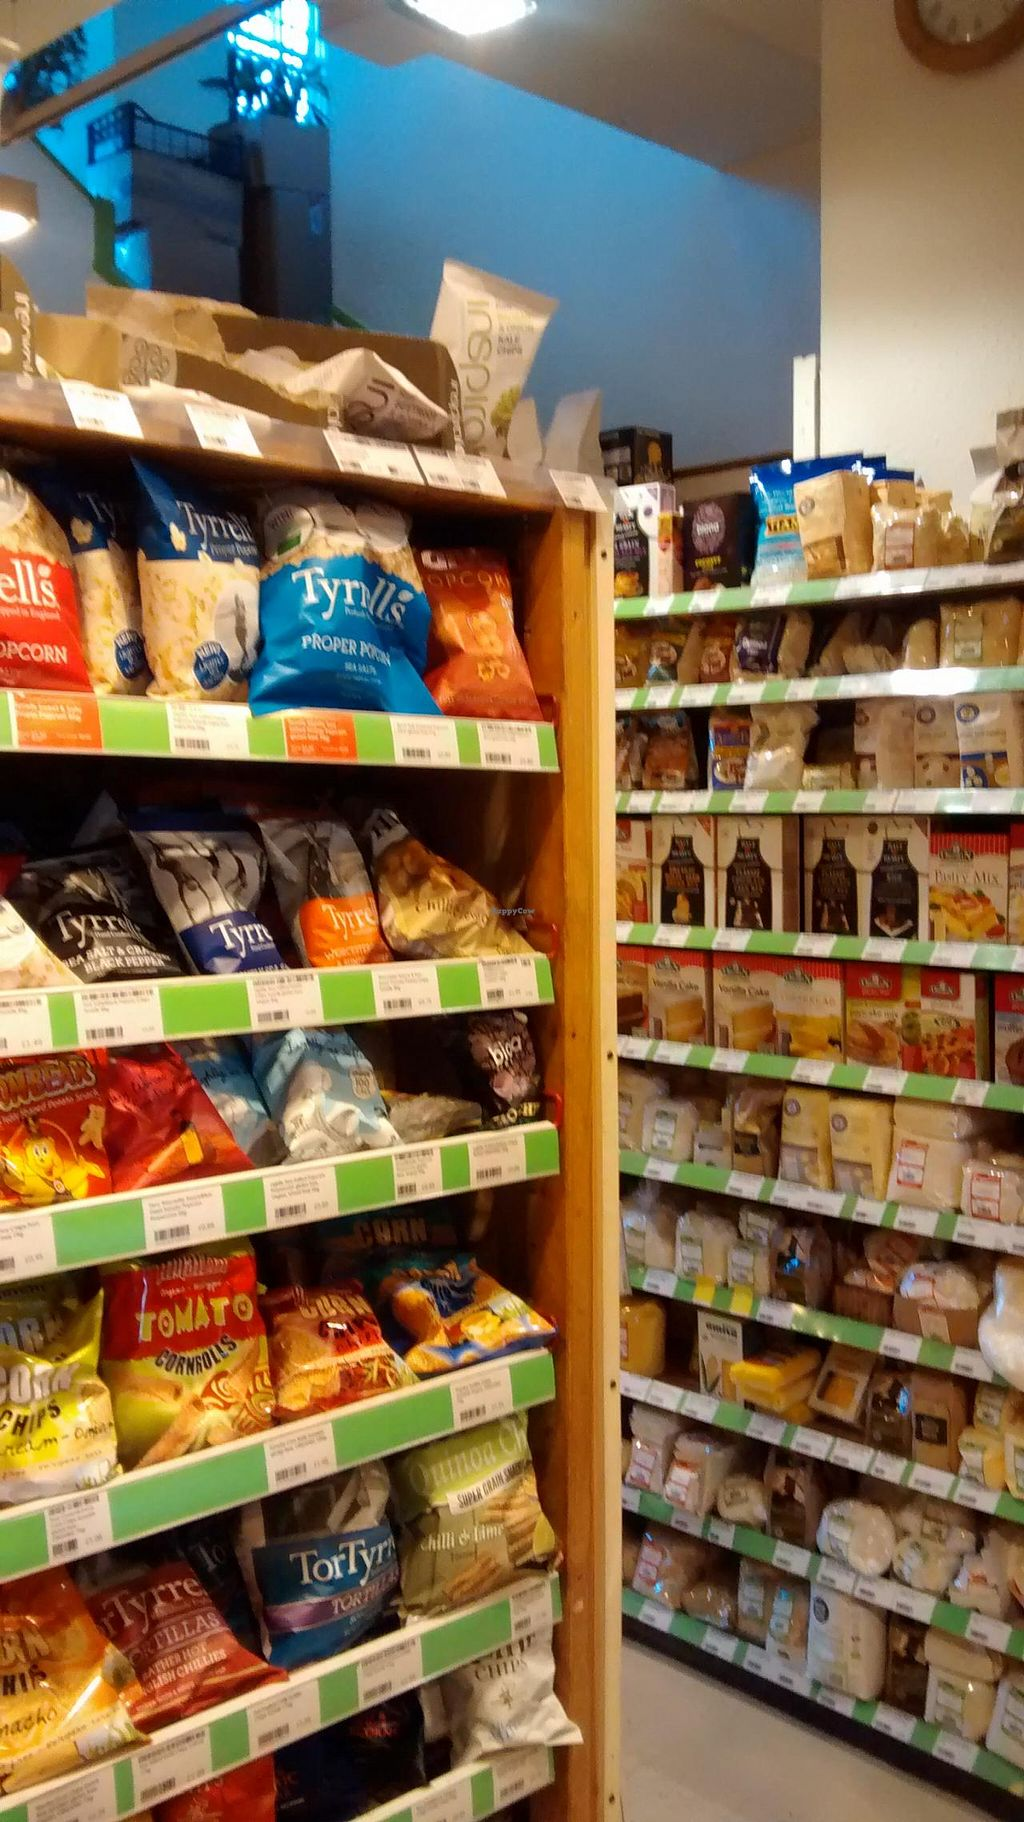 """Photo of Real Foods  by <a href=""""/members/profile/craigmc"""">craigmc</a> <br/>Snacks and flours <br/> February 6, 2014  - <a href='/contact/abuse/image/1088/63795'>Report</a>"""